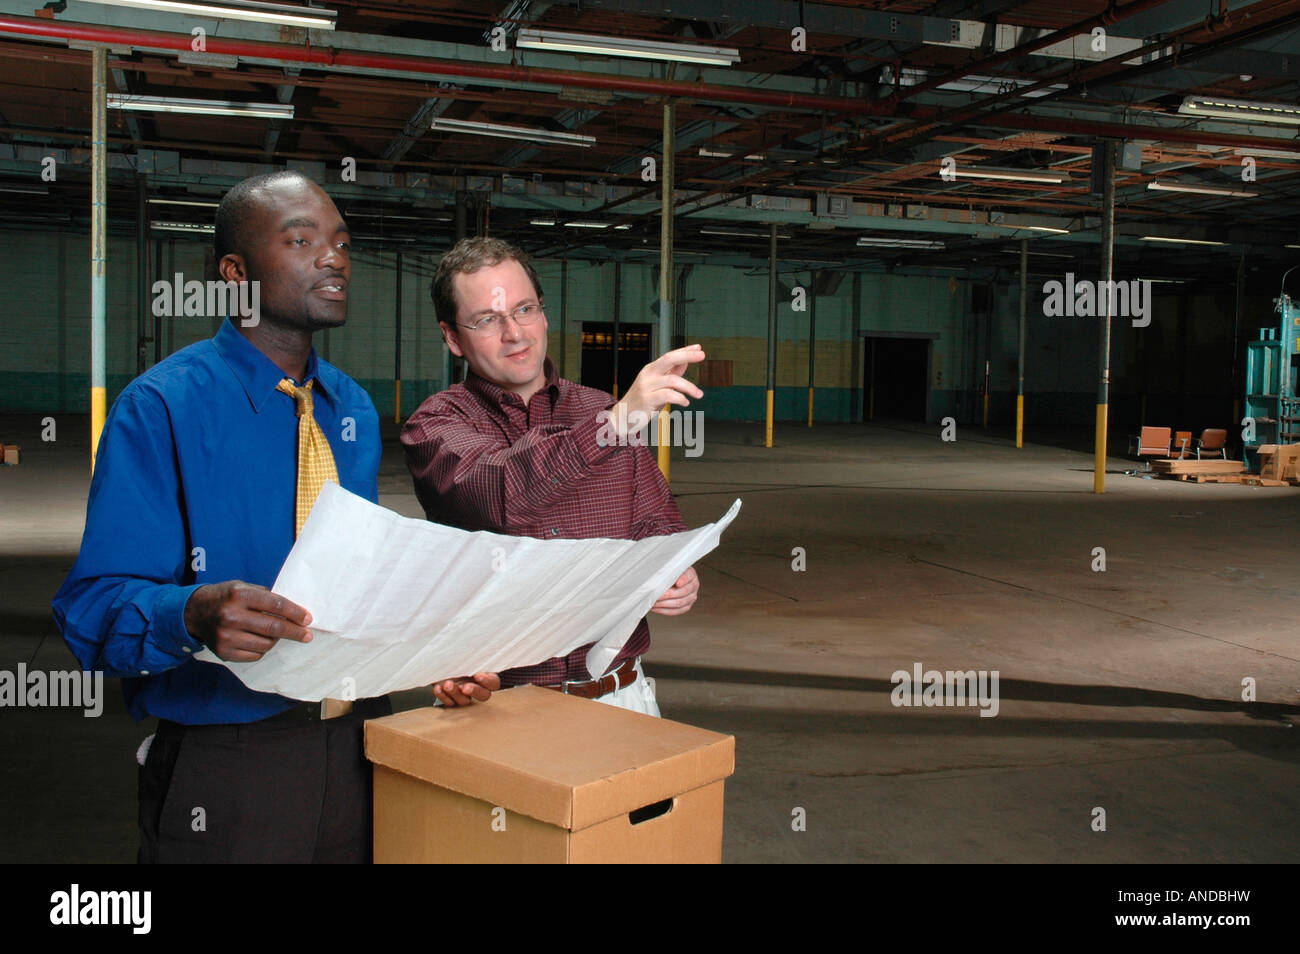 Two men in a empty factory or warehouse planning their entrepreneurial future - Stock Image